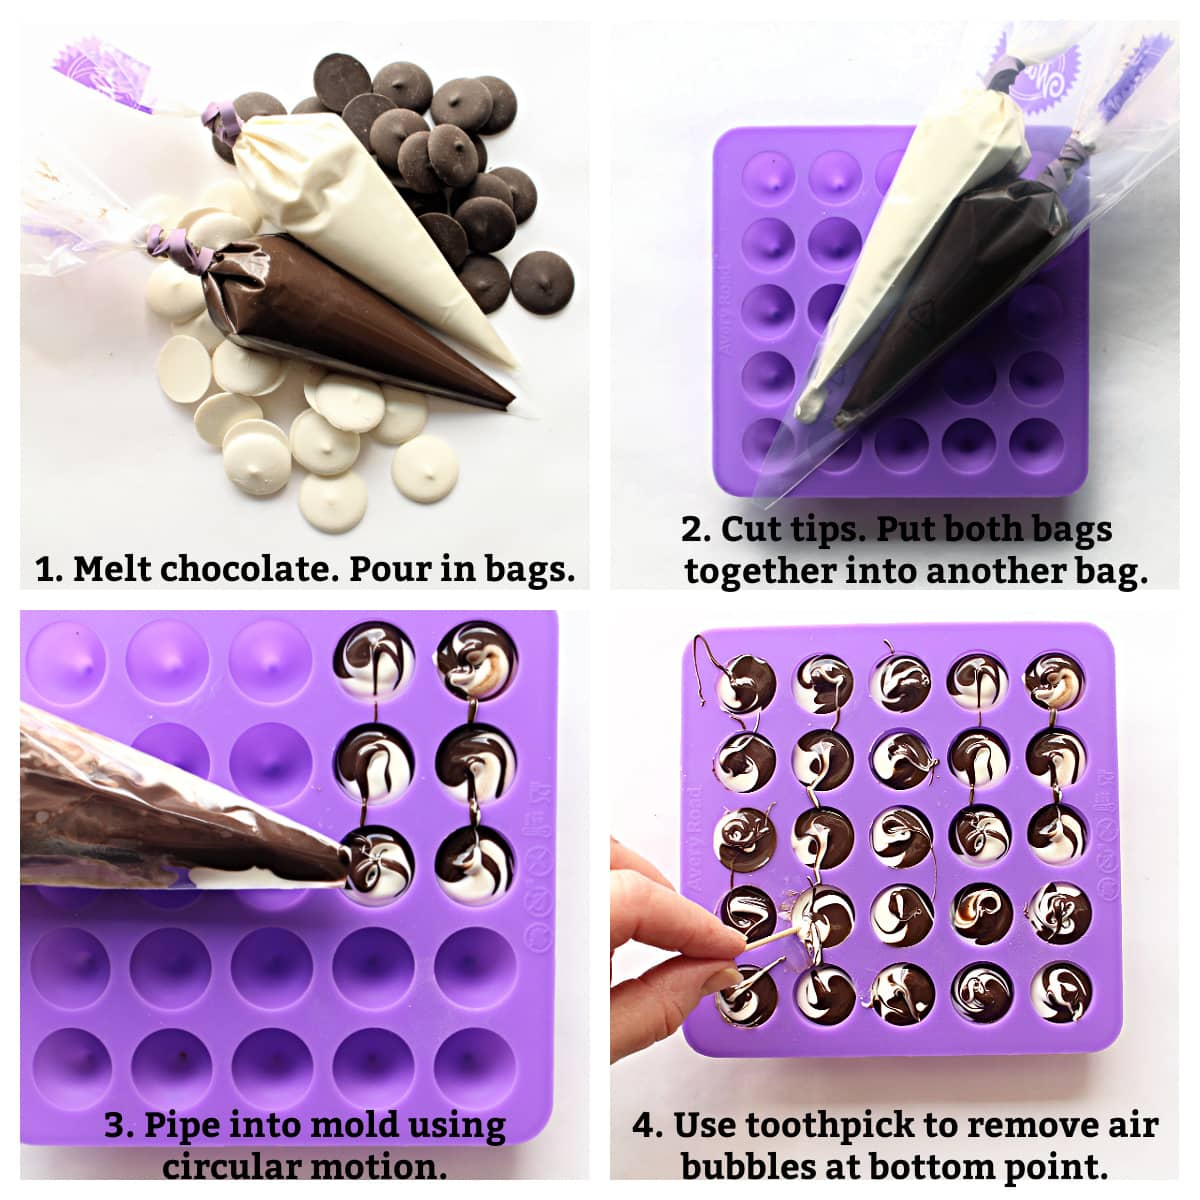 Directions for swirled candy: melted white and dark chocolate in bags, both bags together, fill mold.